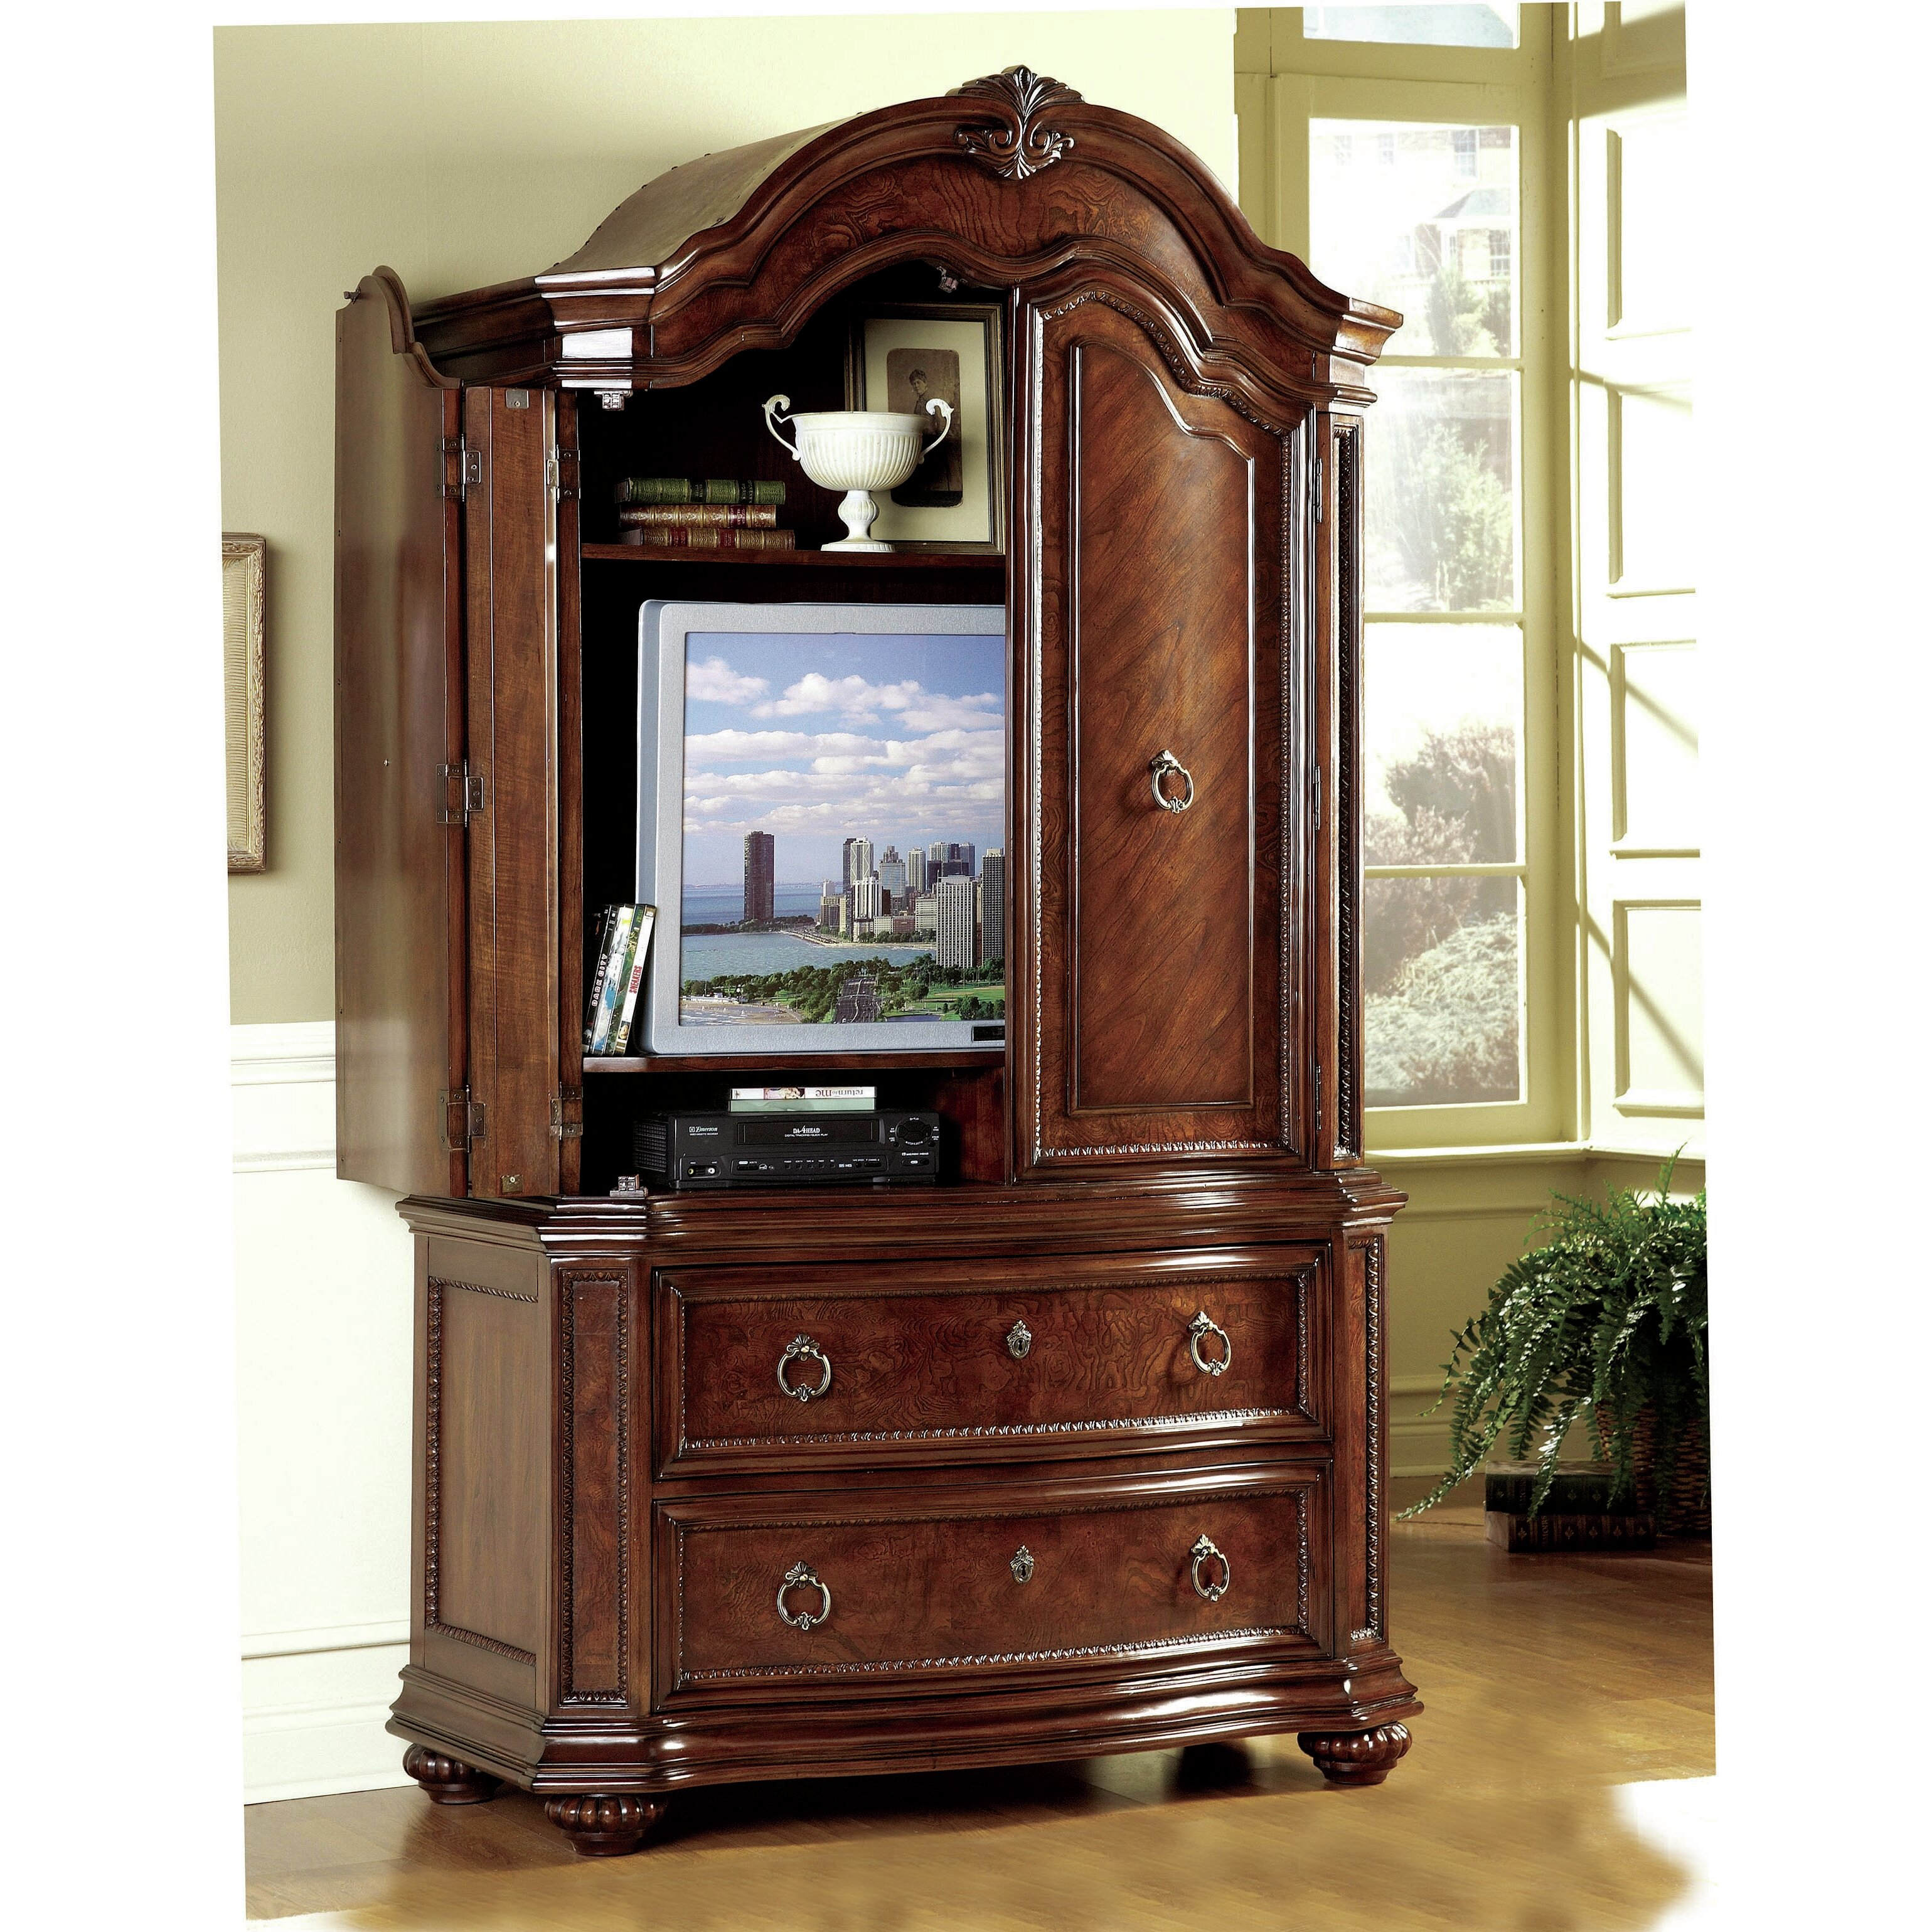 Woodhaven Hill 1390 Series Four Poster Customizable